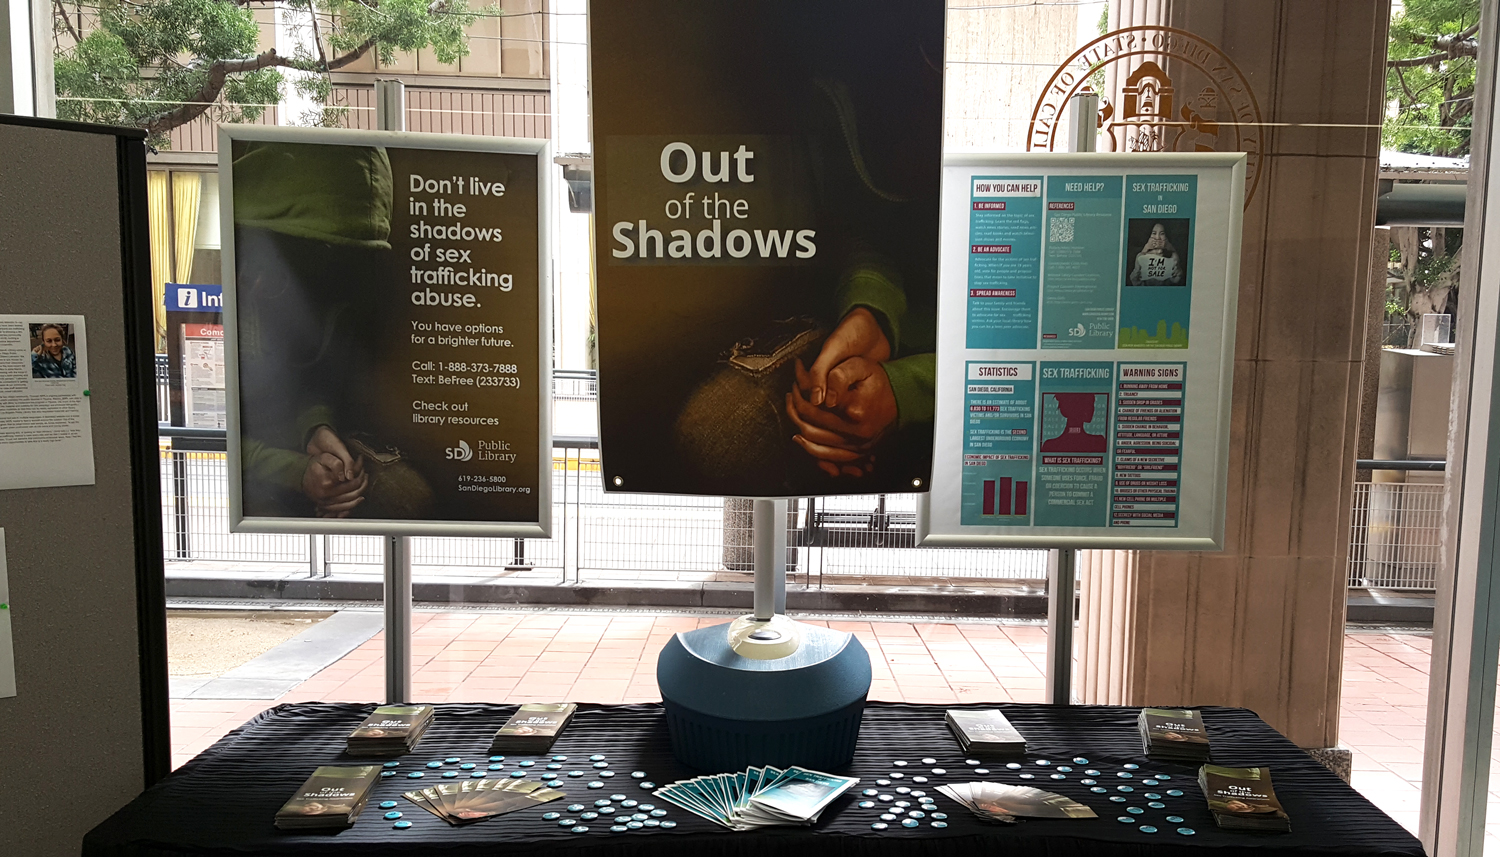 Photo of the Out of the Shadows display at City Hall.